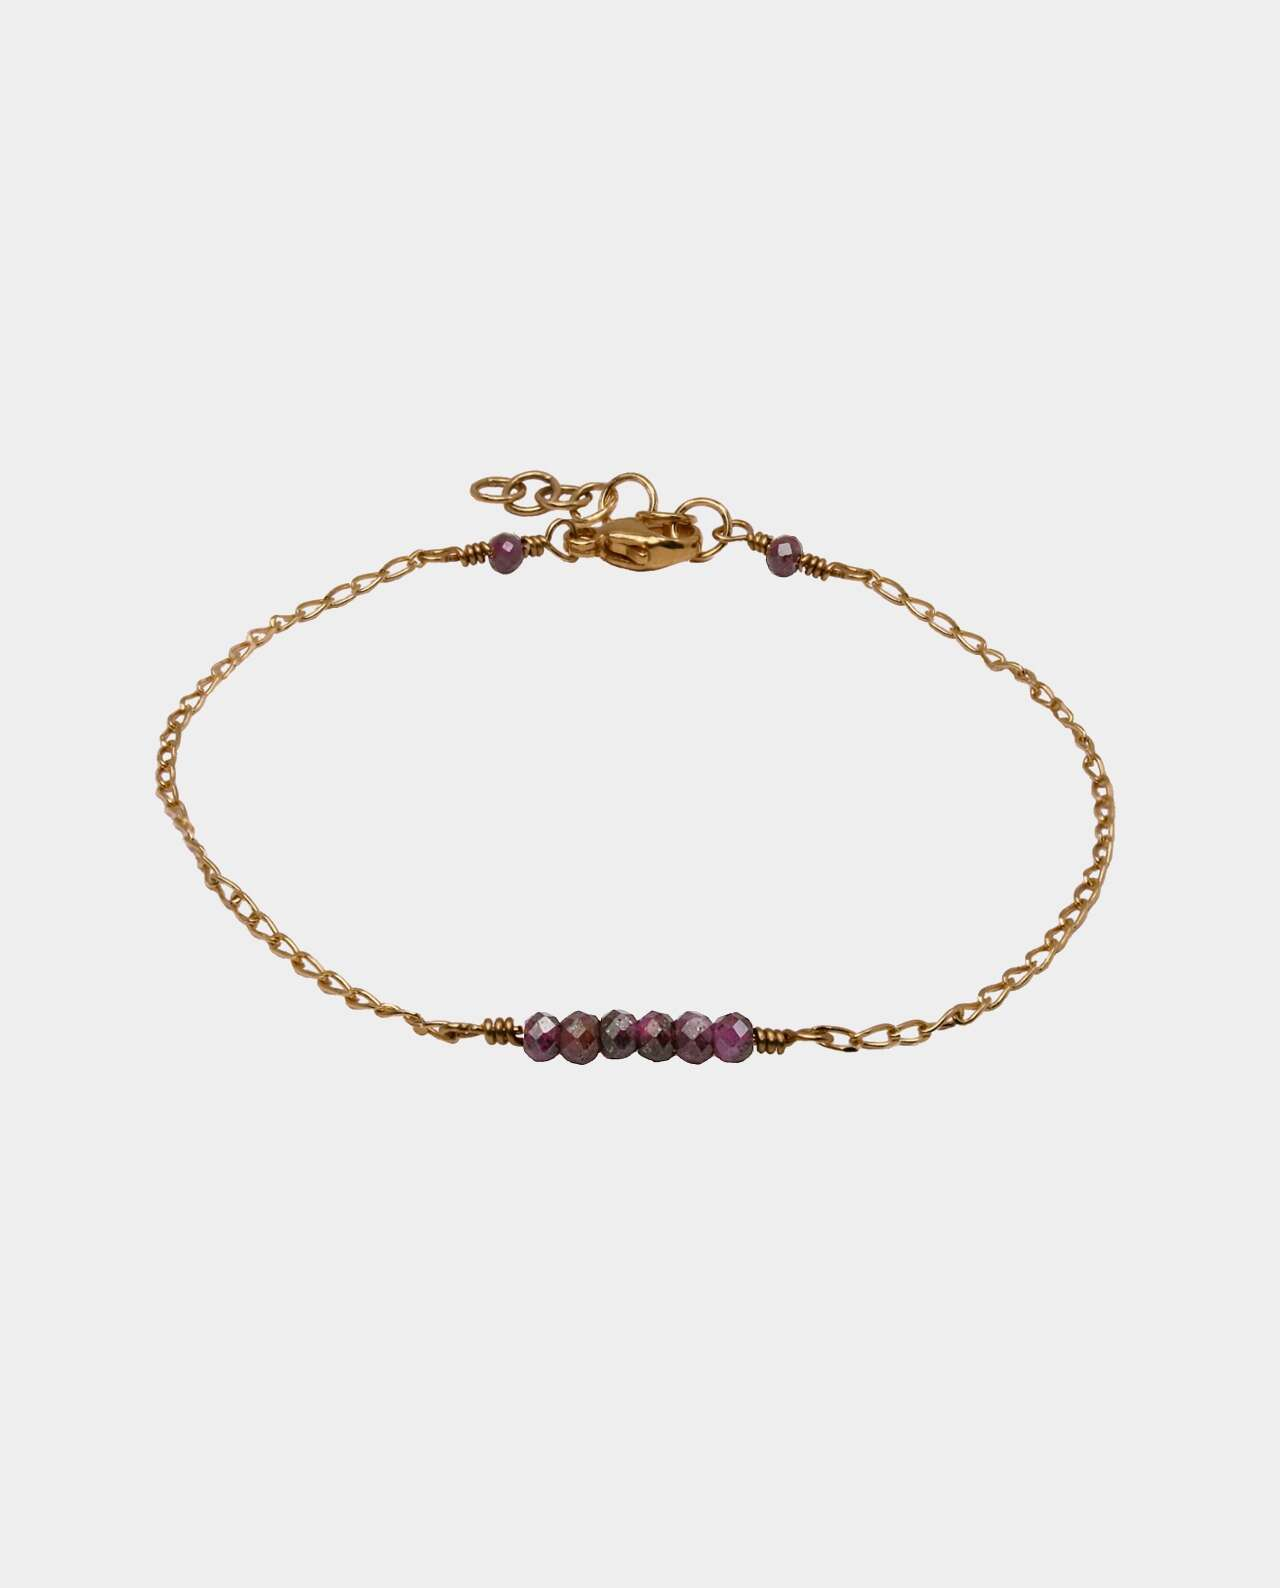 Handmade bracelet with rubies and sterling silver plated gold with 18 carat gold without nickel